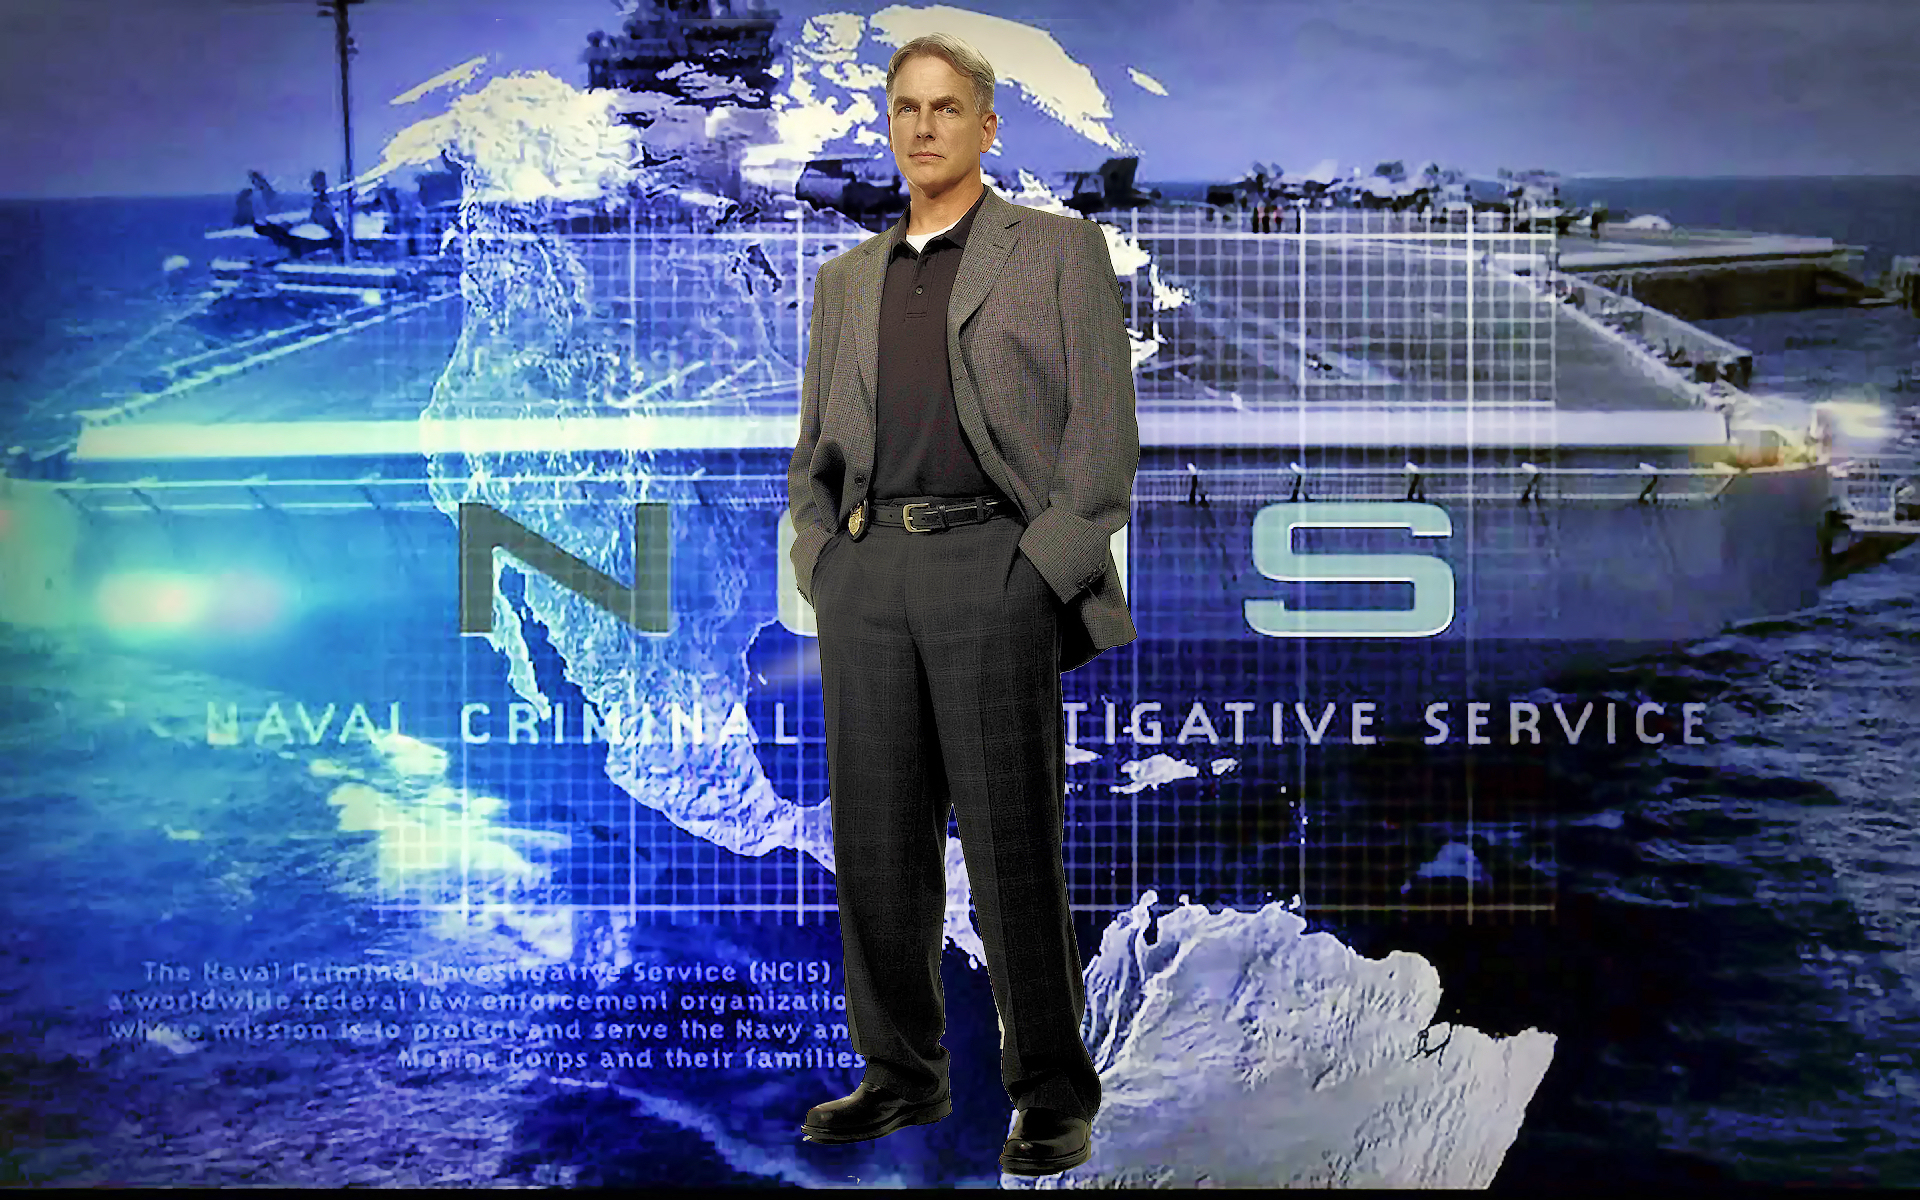 NCIS Logo Wallpaper   HD Wallpapers Backgrounds of Your Choice 1920x1200